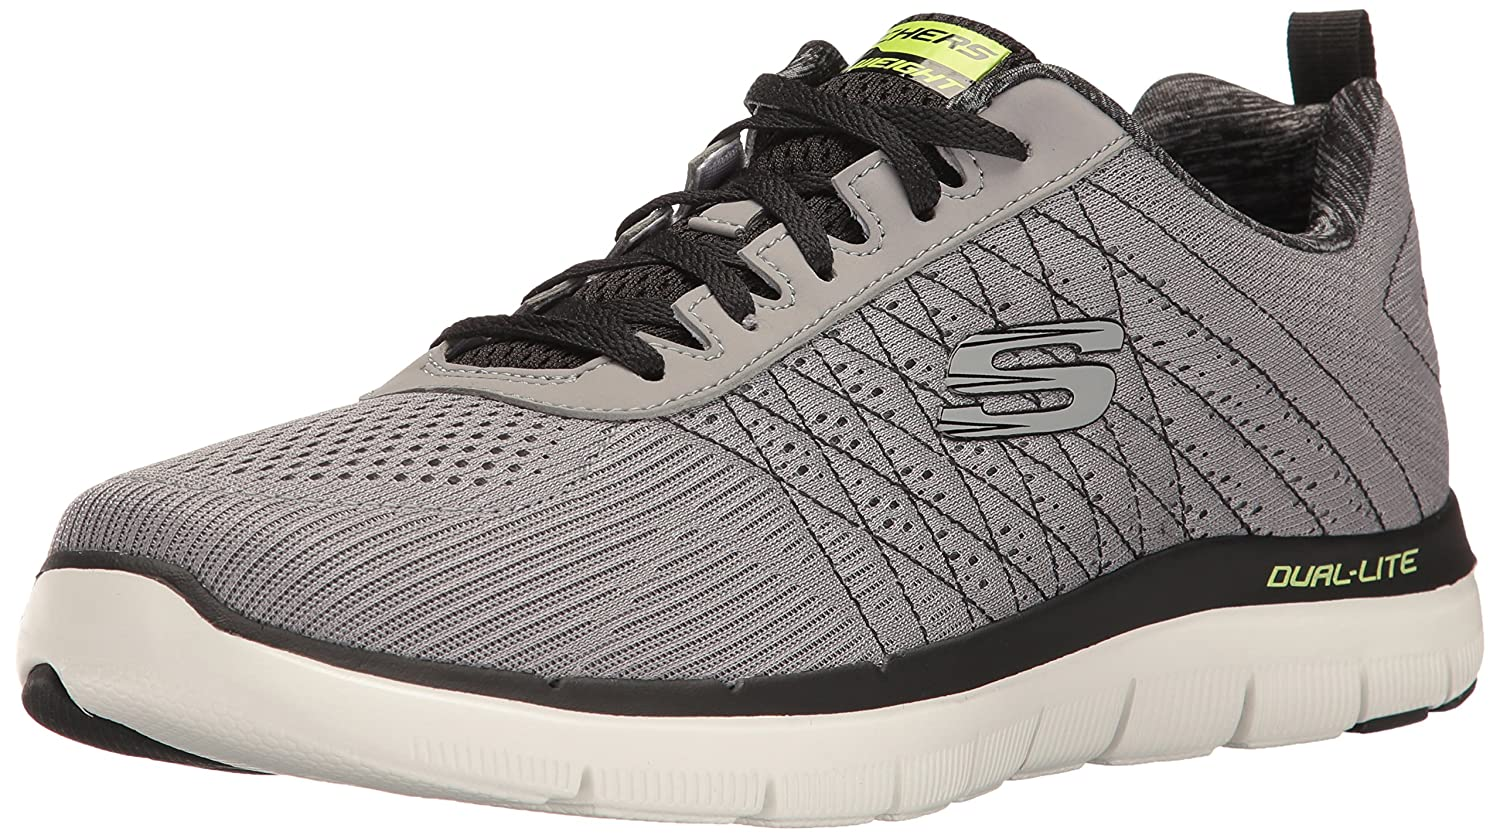 gris (Light gris noir) Skechers Flex Advantage 2.0-The Happs, Chaussures Multisport Outdoor Homme 40 EU